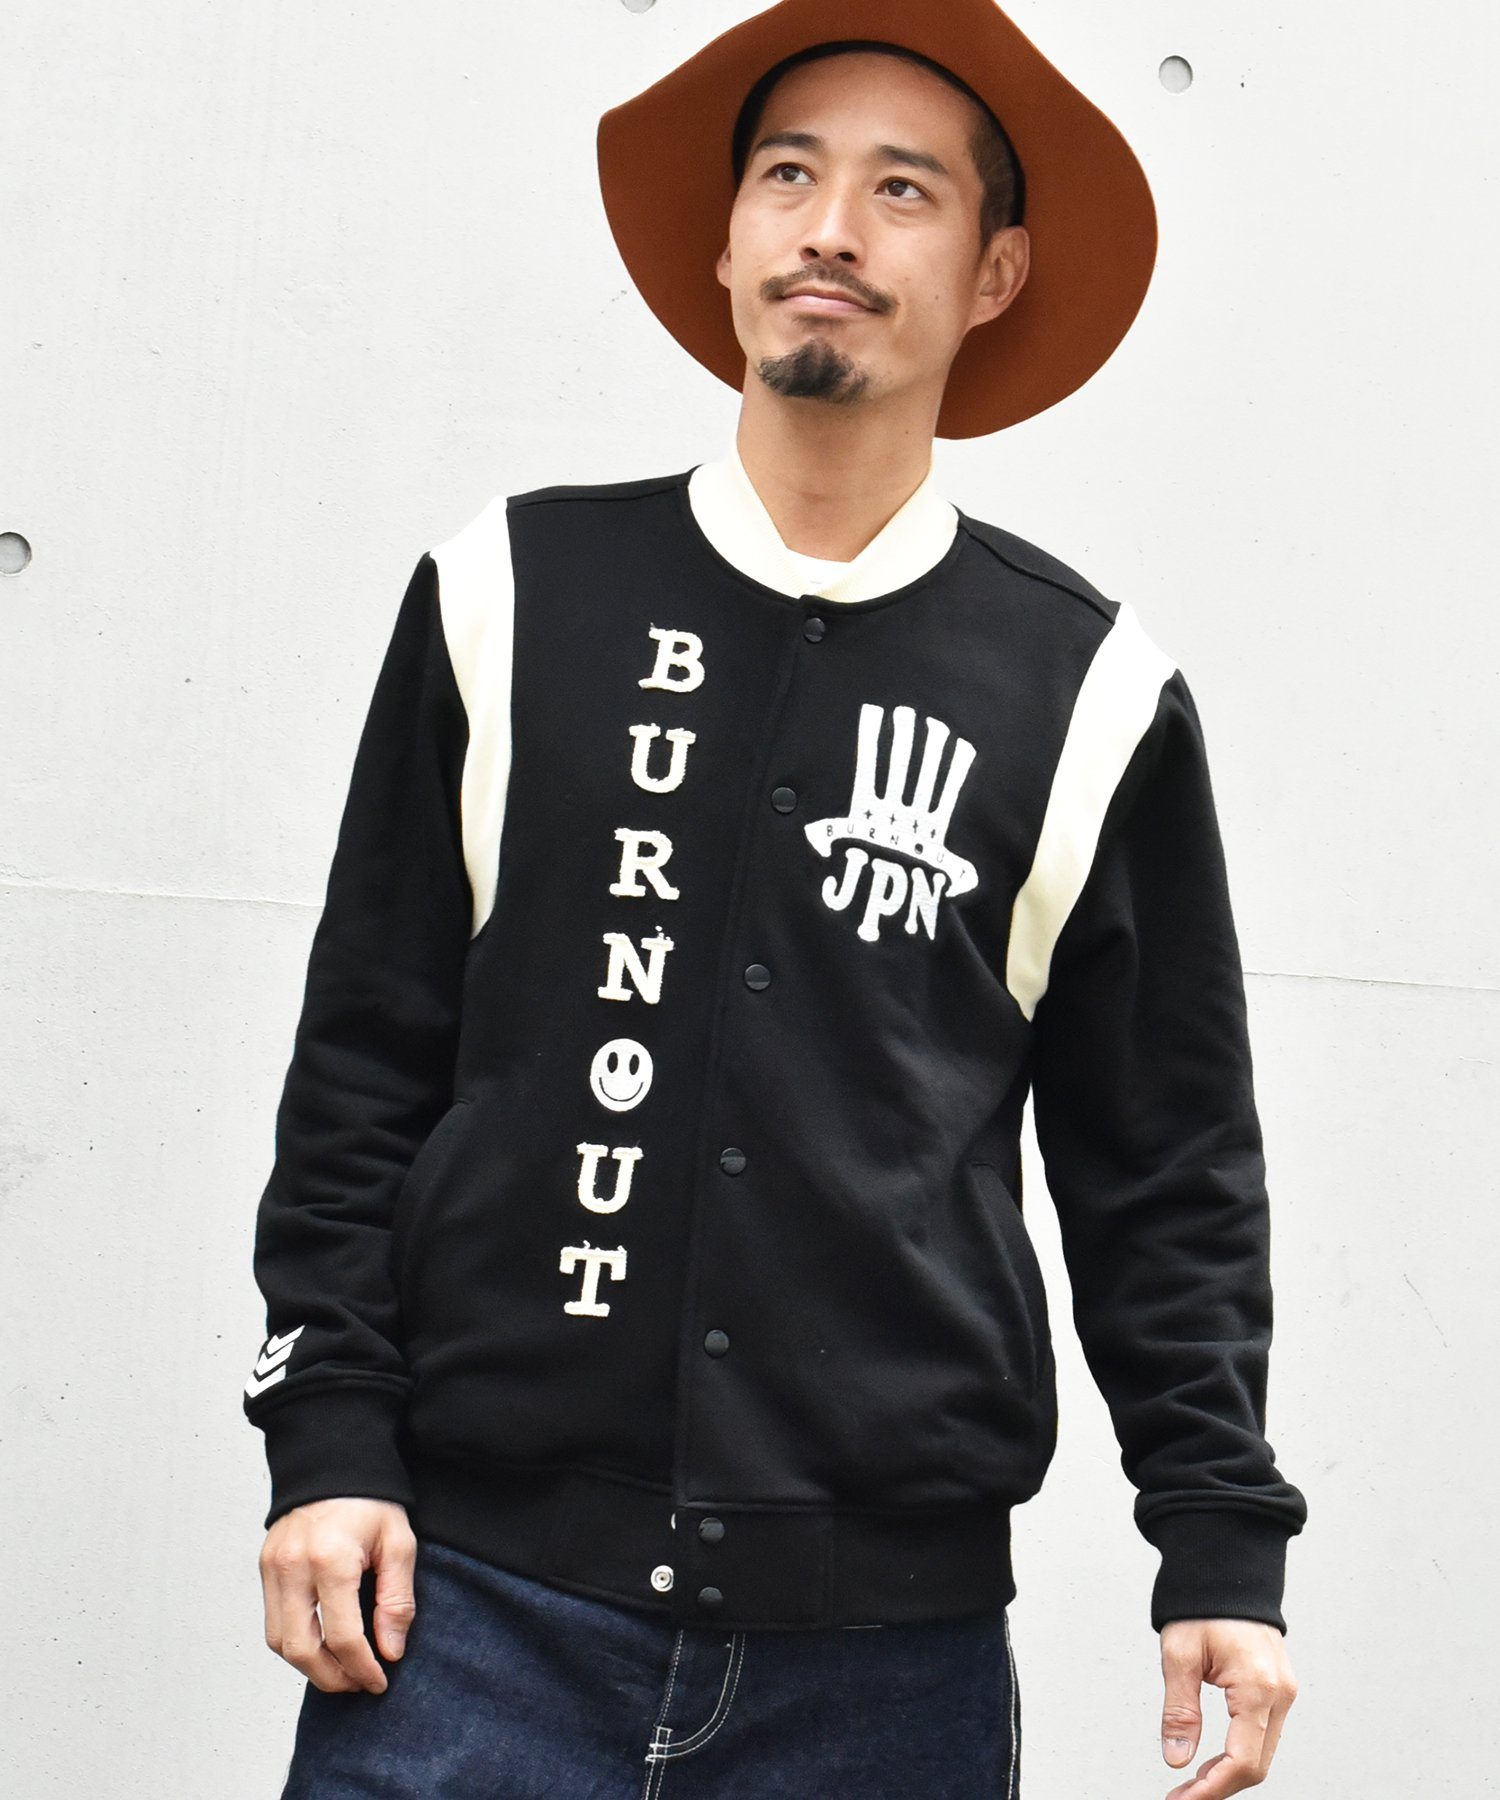 <img class='new_mark_img1' src='https://img.shop-pro.jp/img/new/icons15.gif' style='border:none;display:inline;margin:0px;padding:0px;width:auto;' />Burnout〔バーンアウト〕 『20/21 Early Spring Collection』 スウェットスタジアムジャンパー(Black)